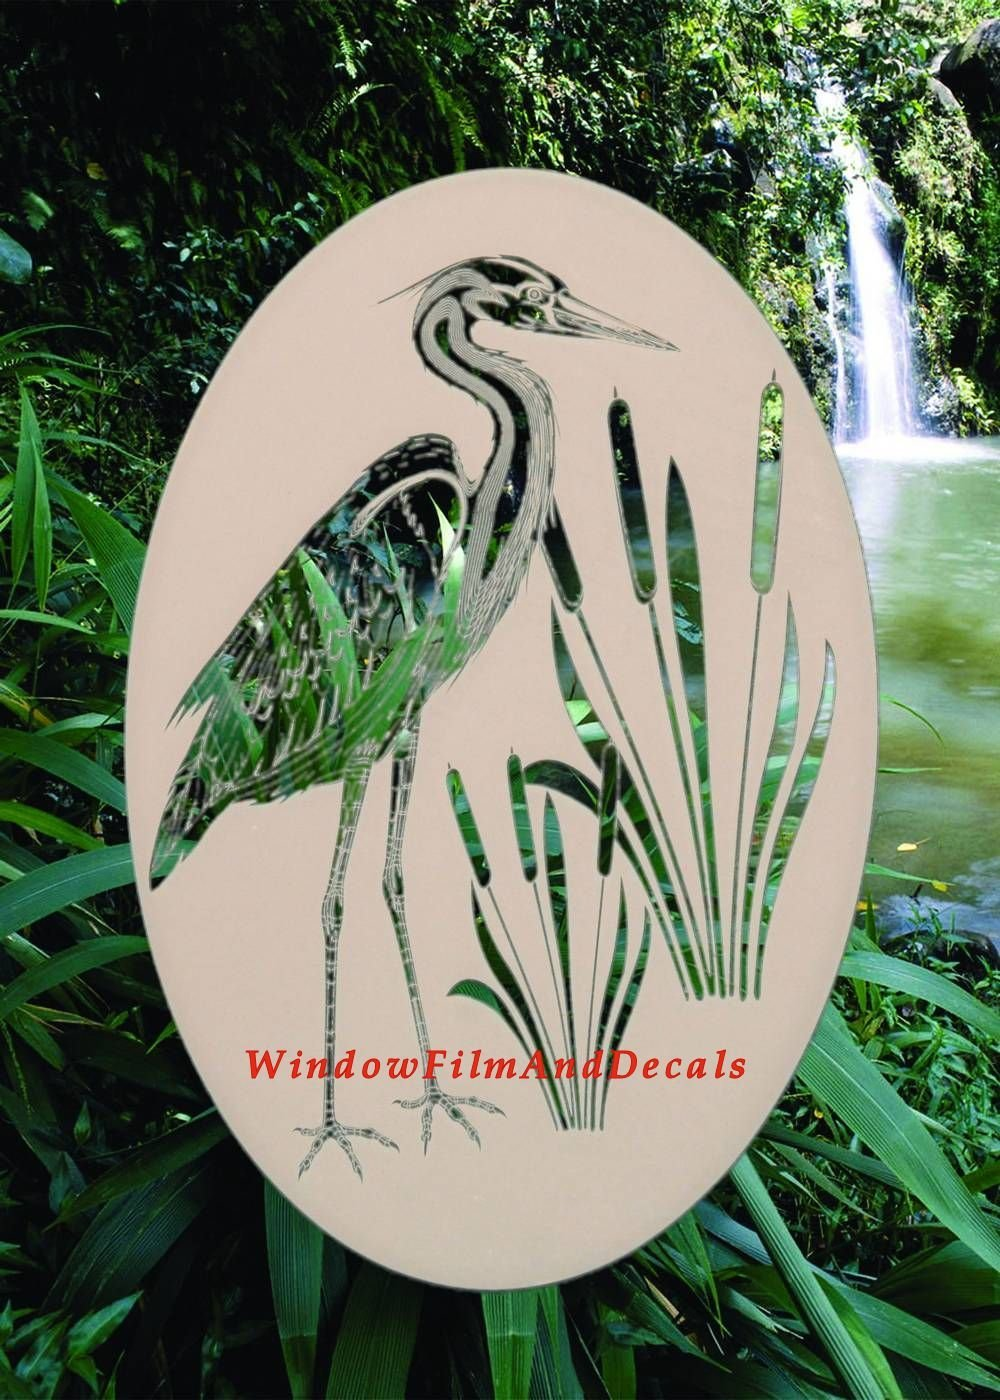 Oval Egret & Cattails Left Etched Window Decal Vinyl Glass Cling - 21'' x 33'' - White with Clear Design Elements by Vinyl Etchings